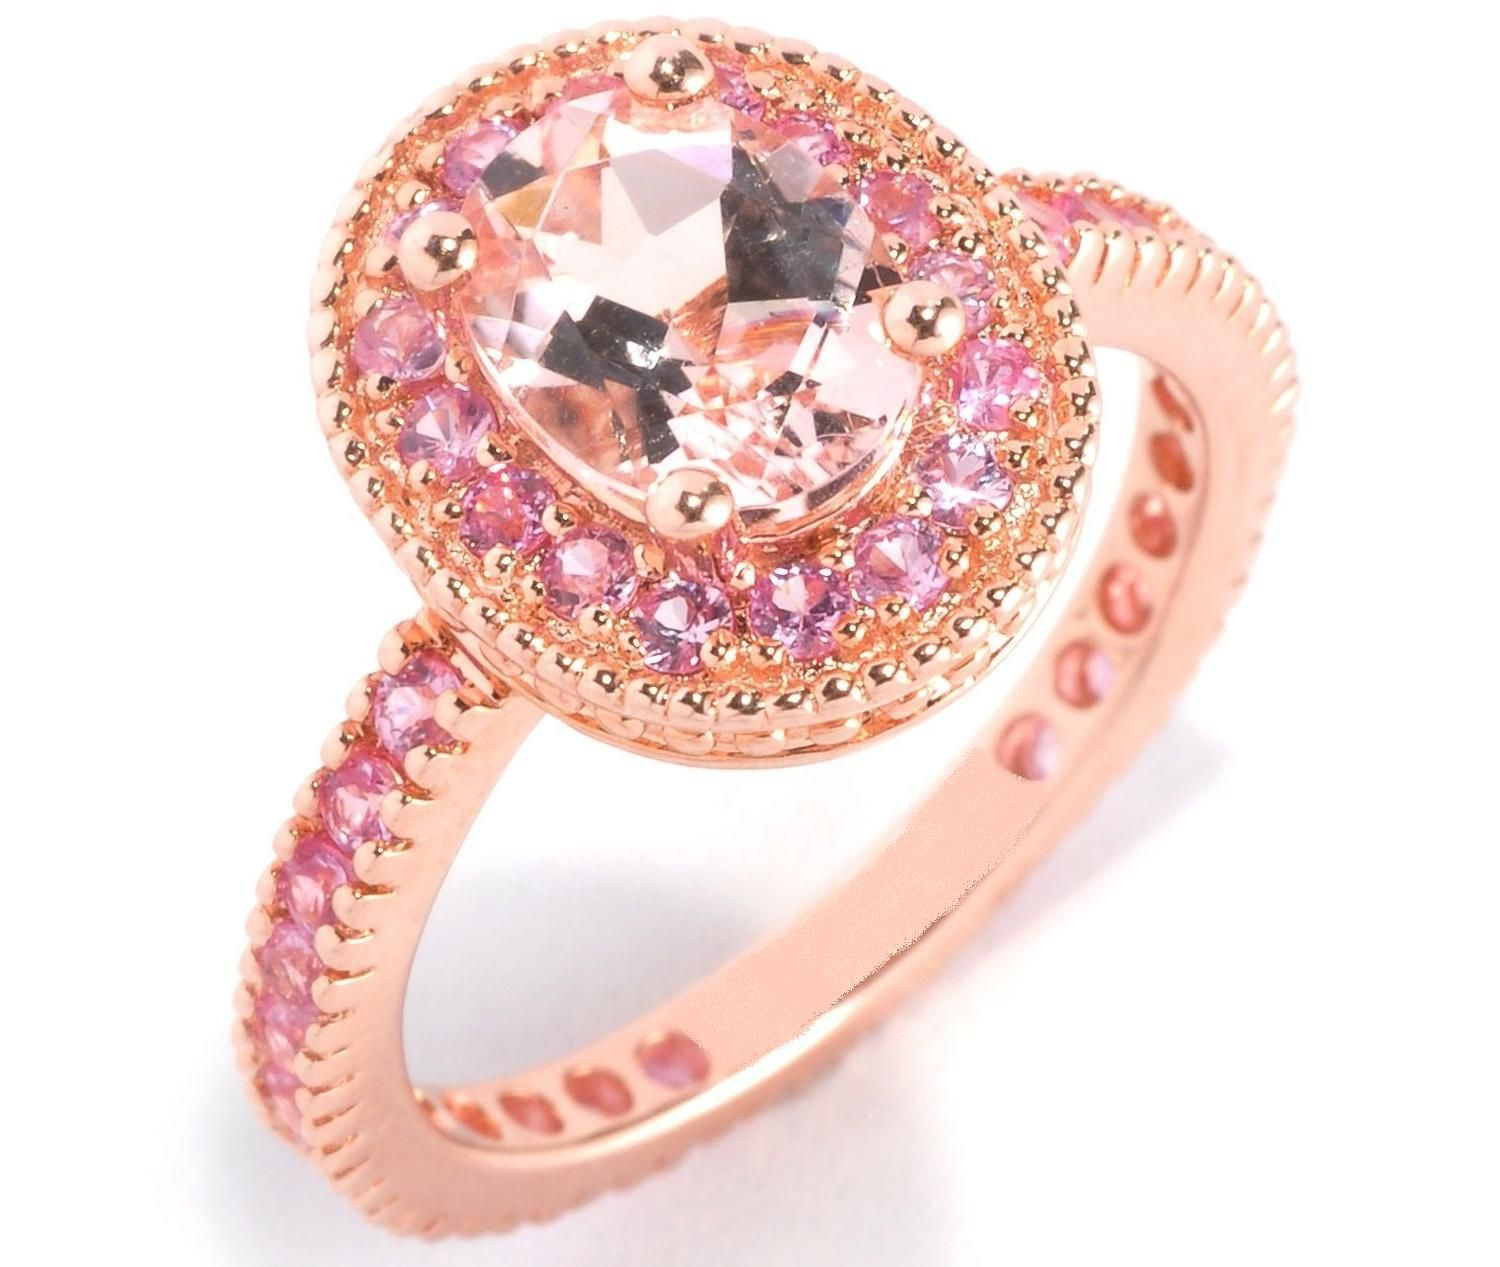 Beautiful Pink Diamond Rings Rose Gold Engagement | Jewelry ...